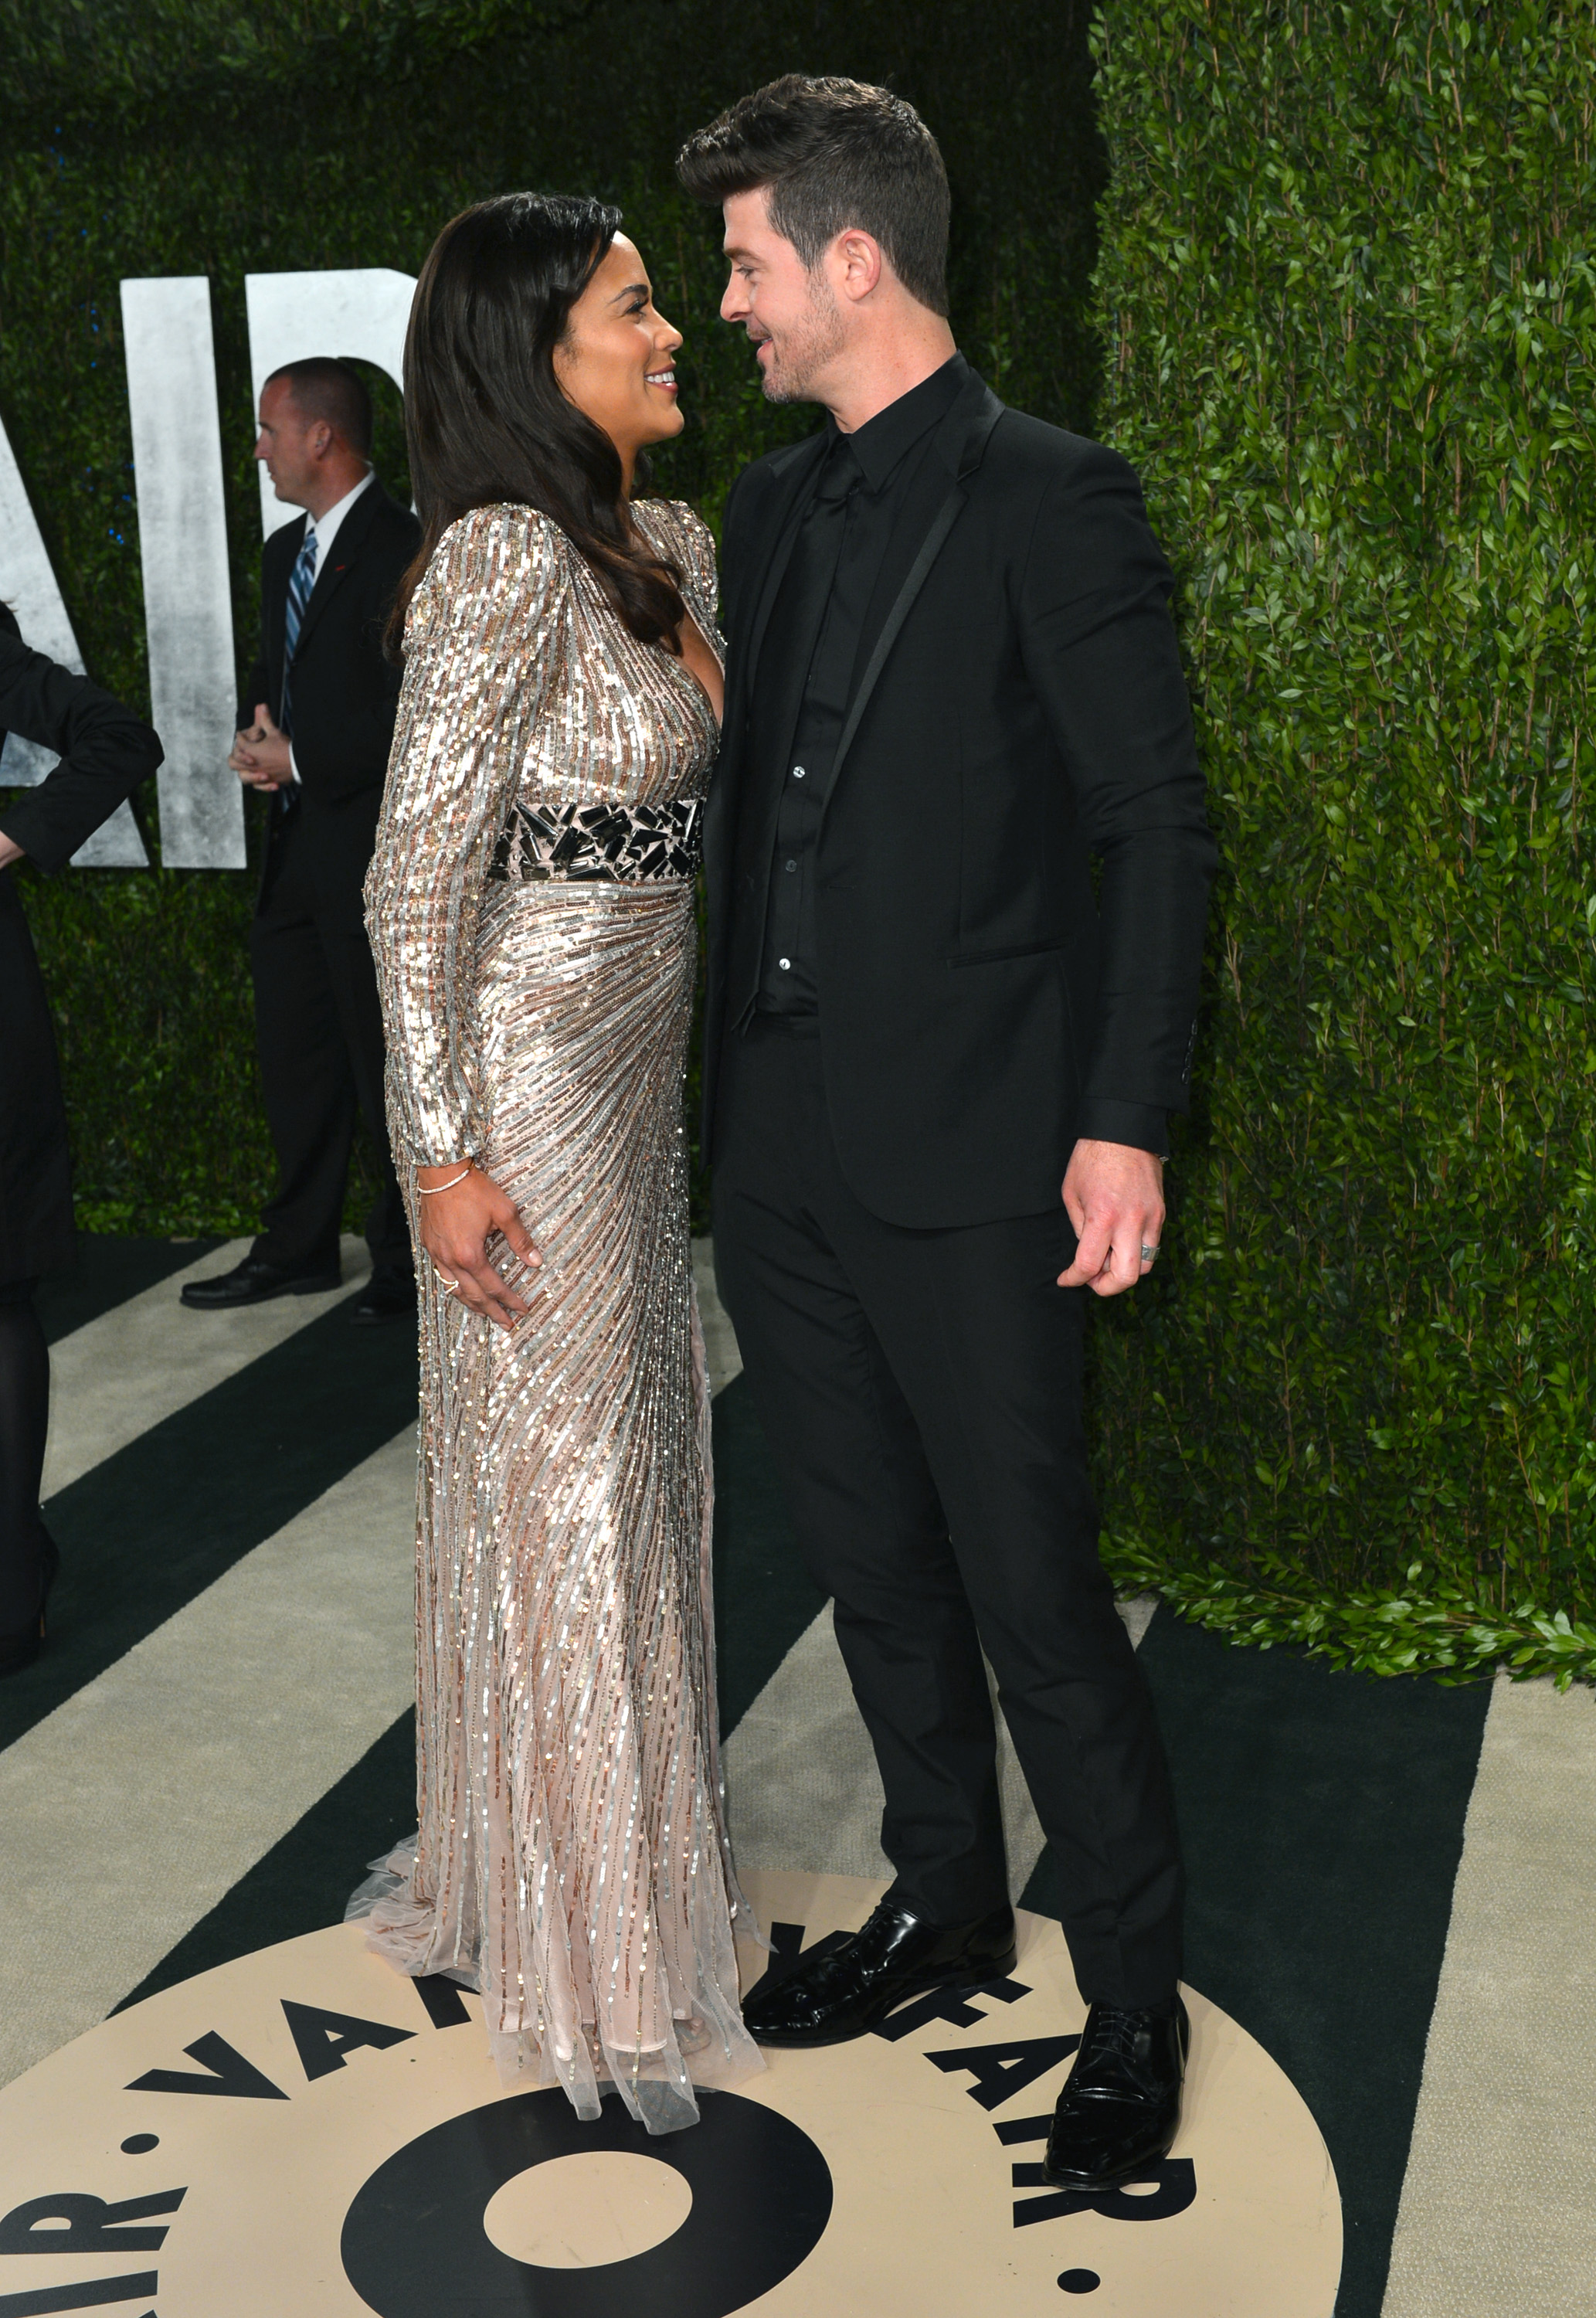 Paula Patton and Robin Thicke shared a loving look as they arrived at the Vanity Fair Oscar party on Sunday night.